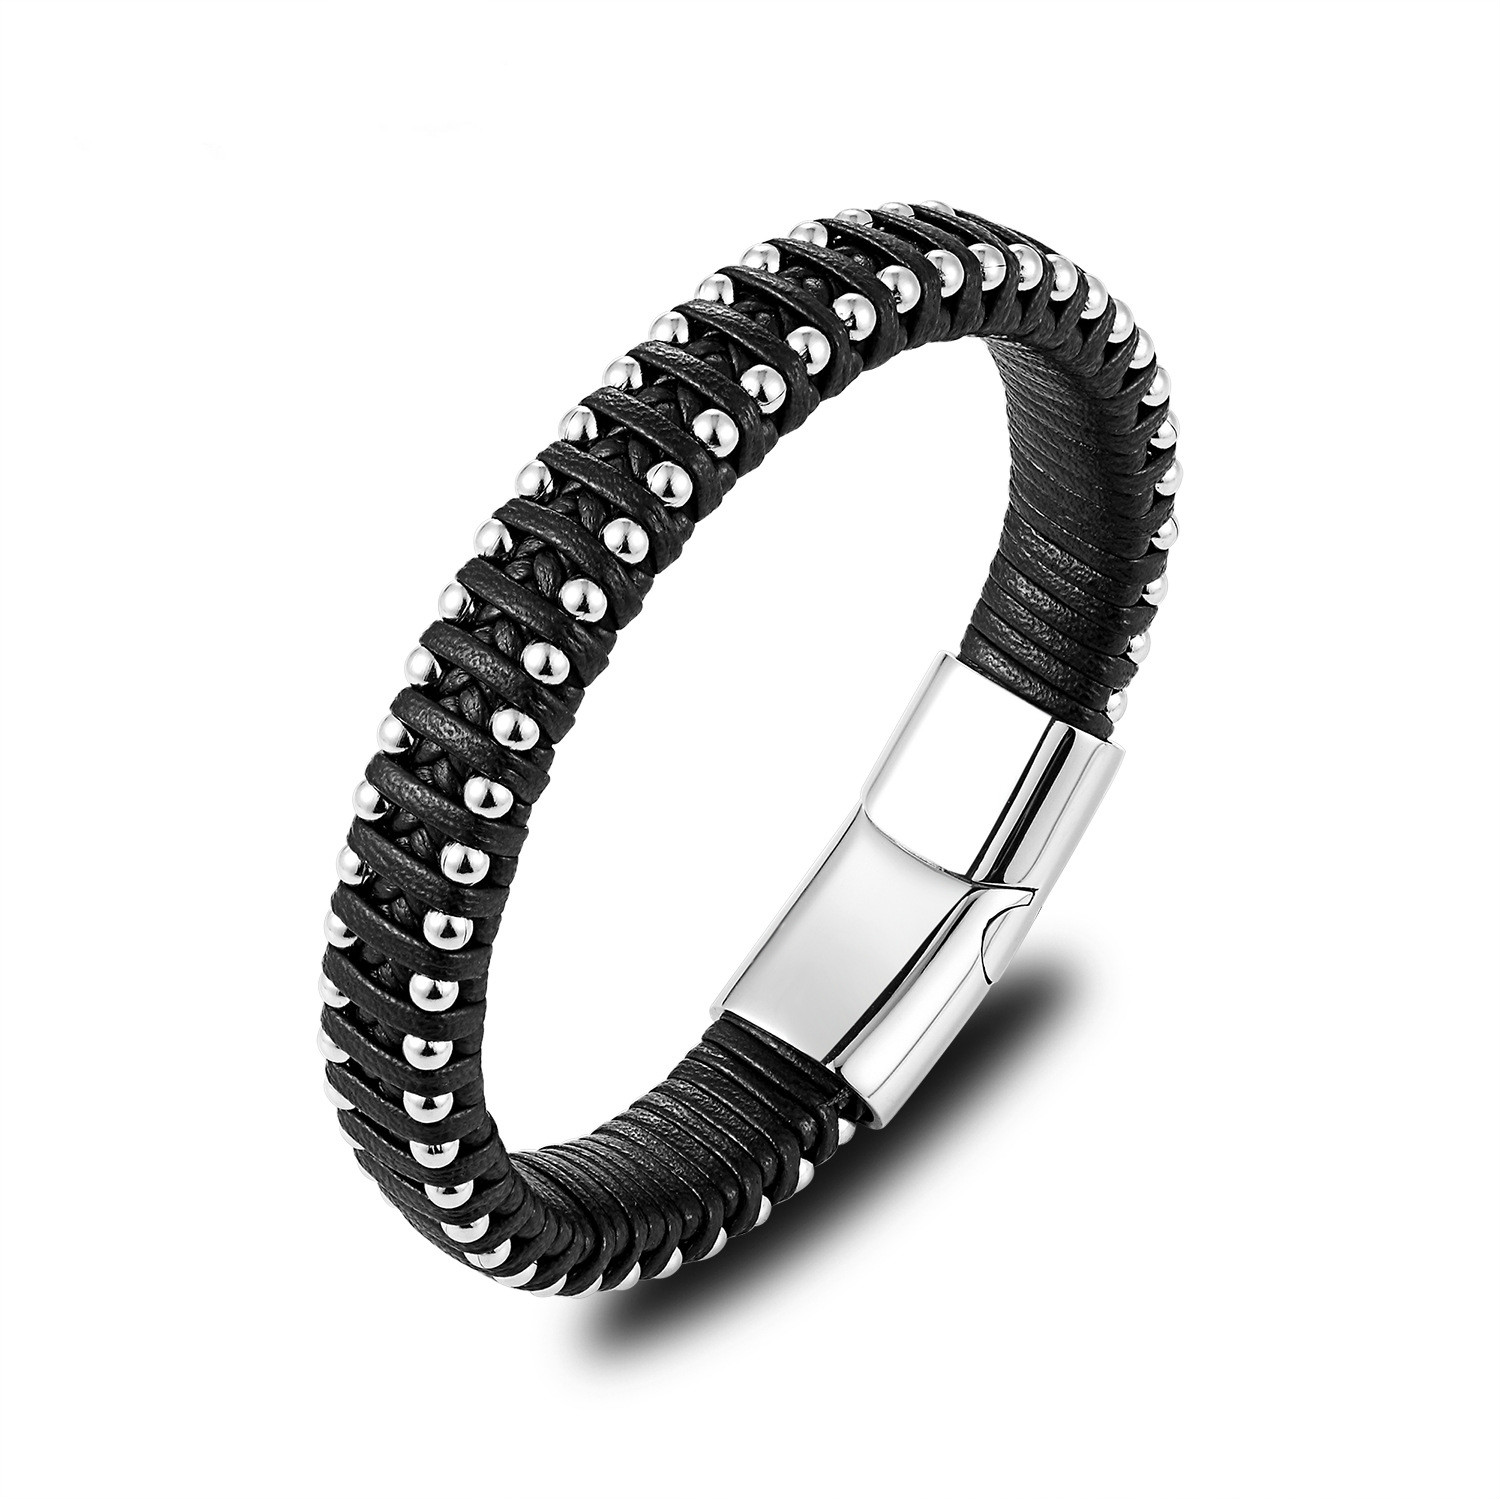 New Men s Leather Braided Bracelet Personality Stainless Steel Ball Individual Jewelry Top Grade Hand Feature